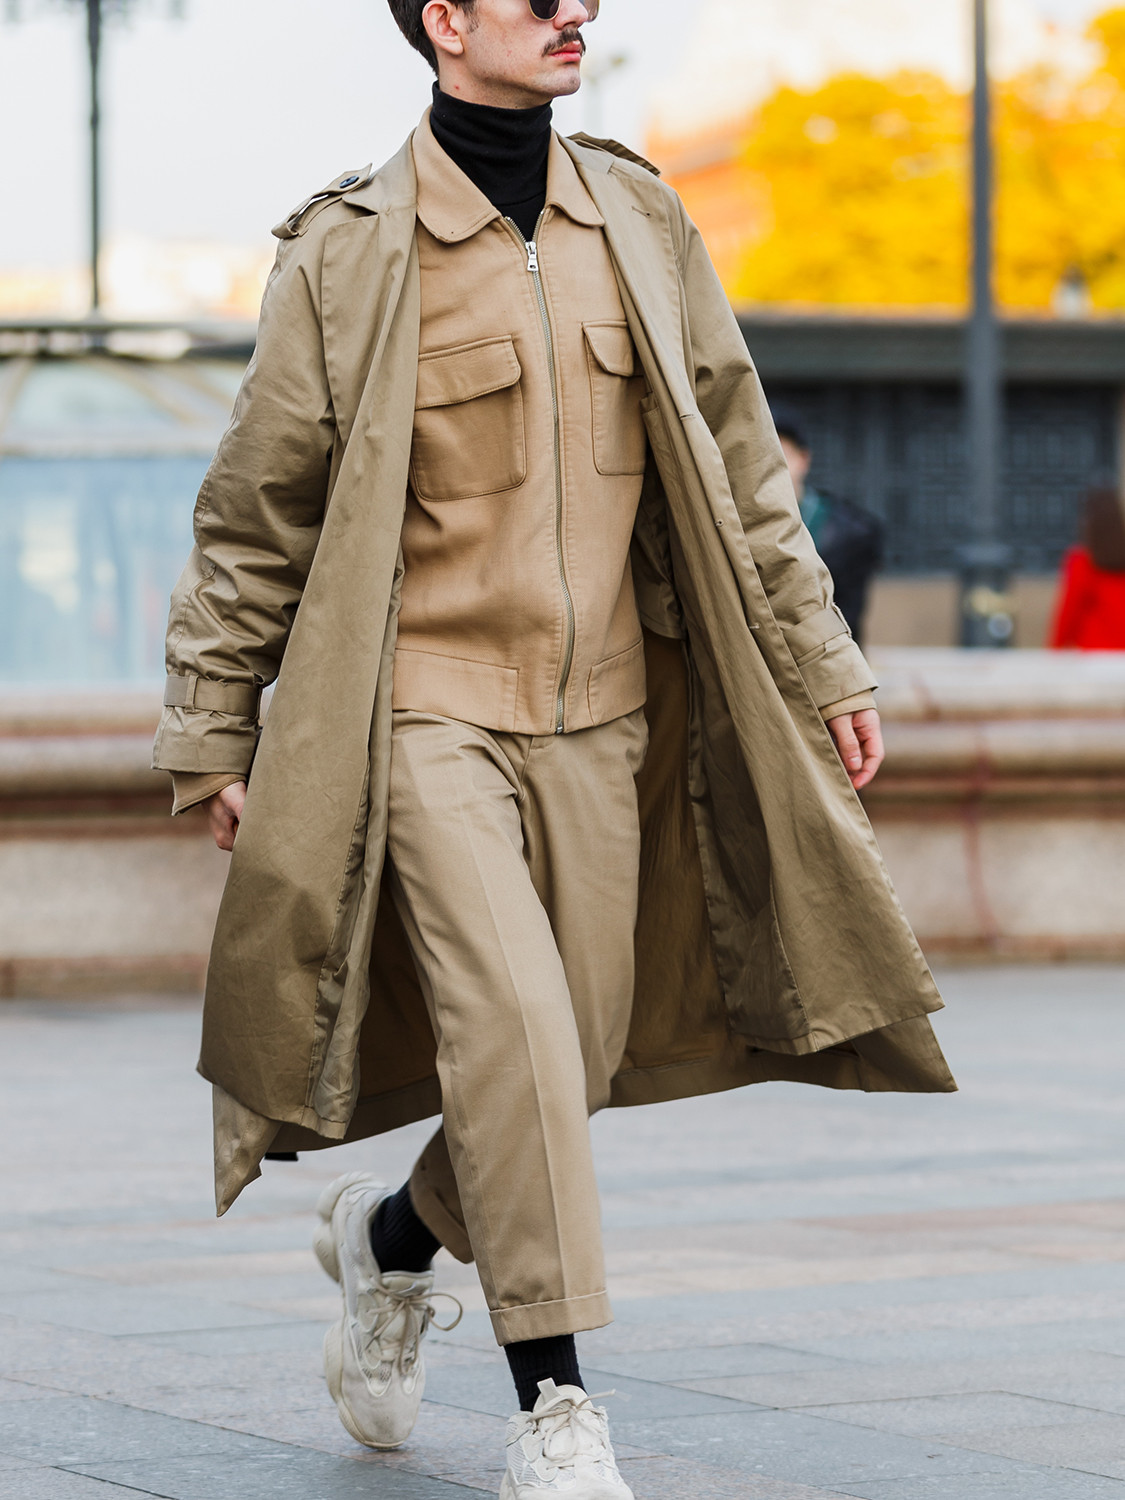 Men's outfit idea for 2021 with neutral trench coat, neutral utility jacket, black lightweight rollneck jumper, neutral chinos, neutral trainers / sneakers. Suitable for autumn.